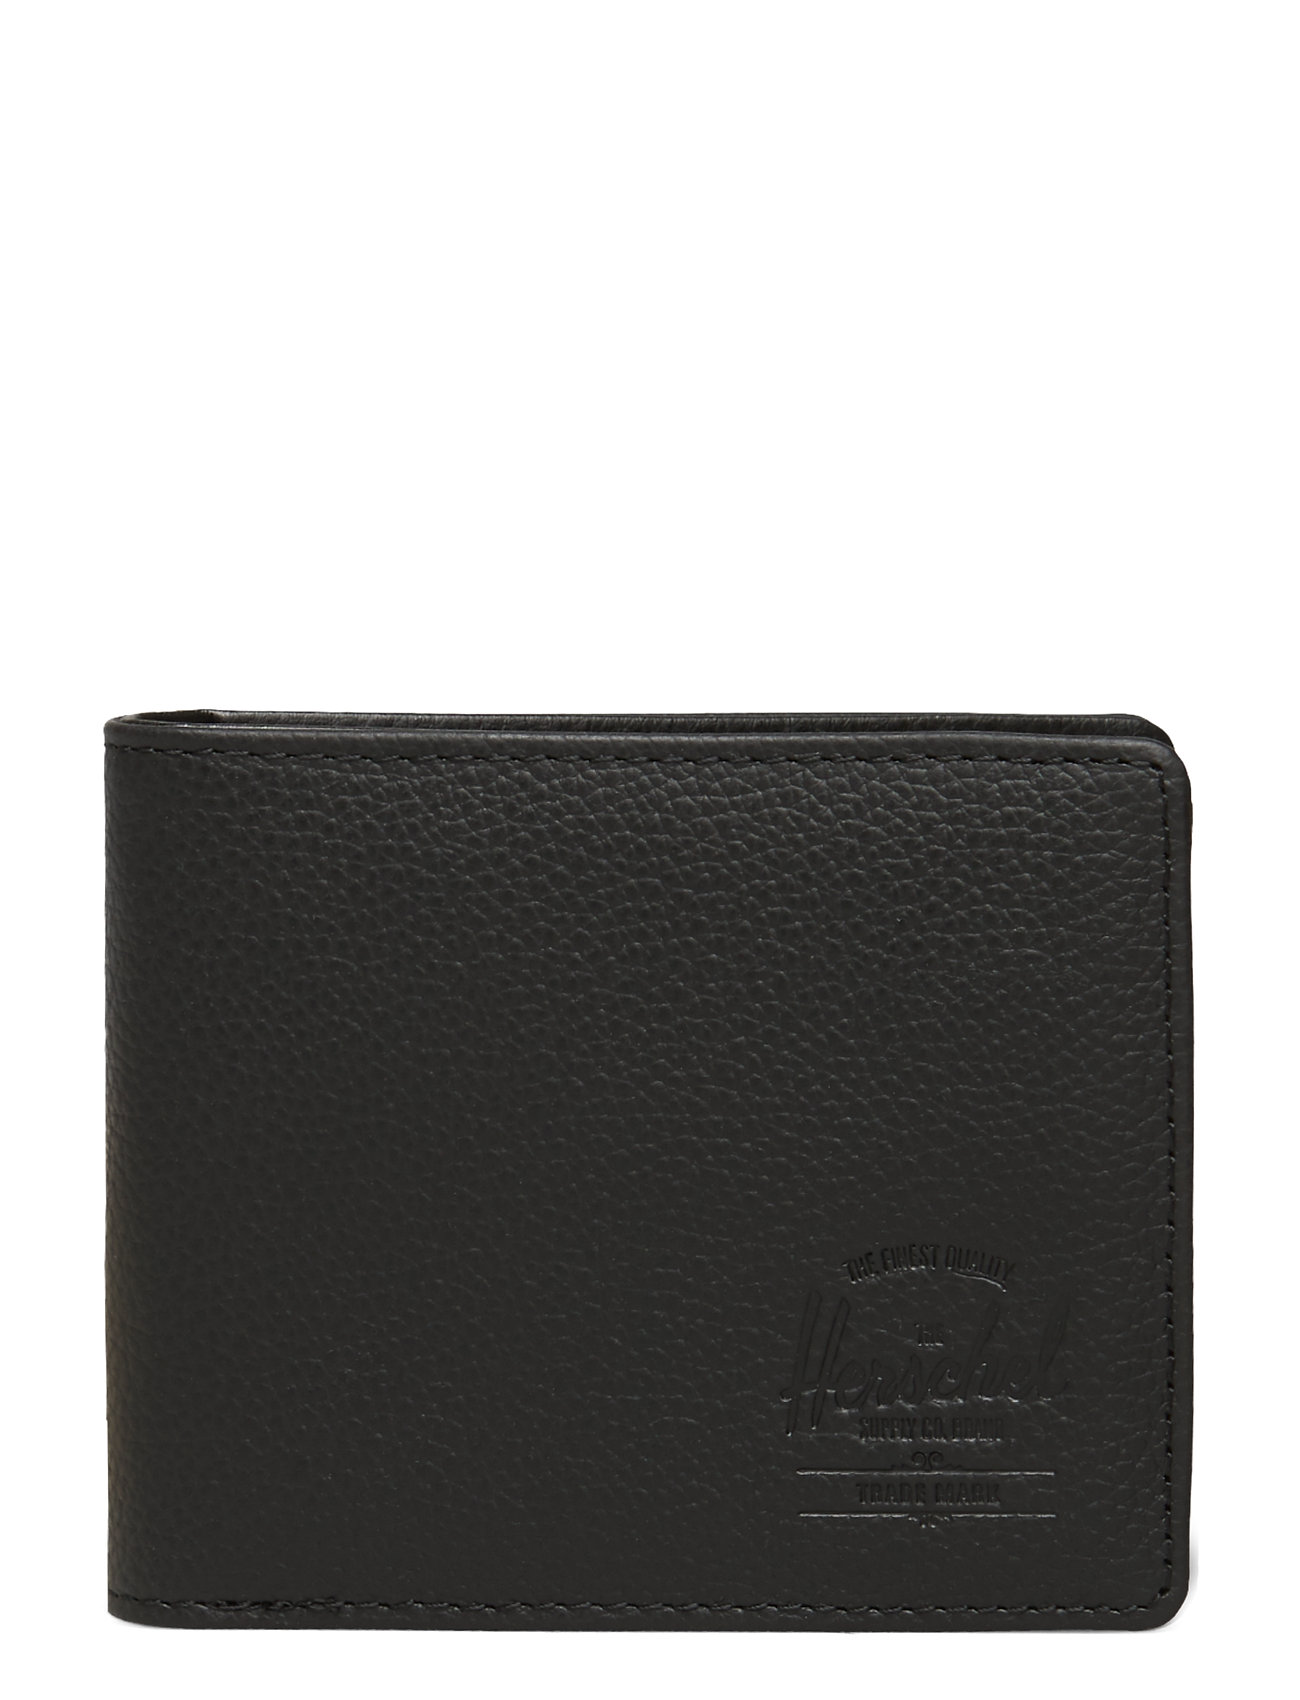 Image of Hank Leather Rfid - Black Pebbled Leather Accessories Wallets Classic Wallets Sort Herschel (3354387475)